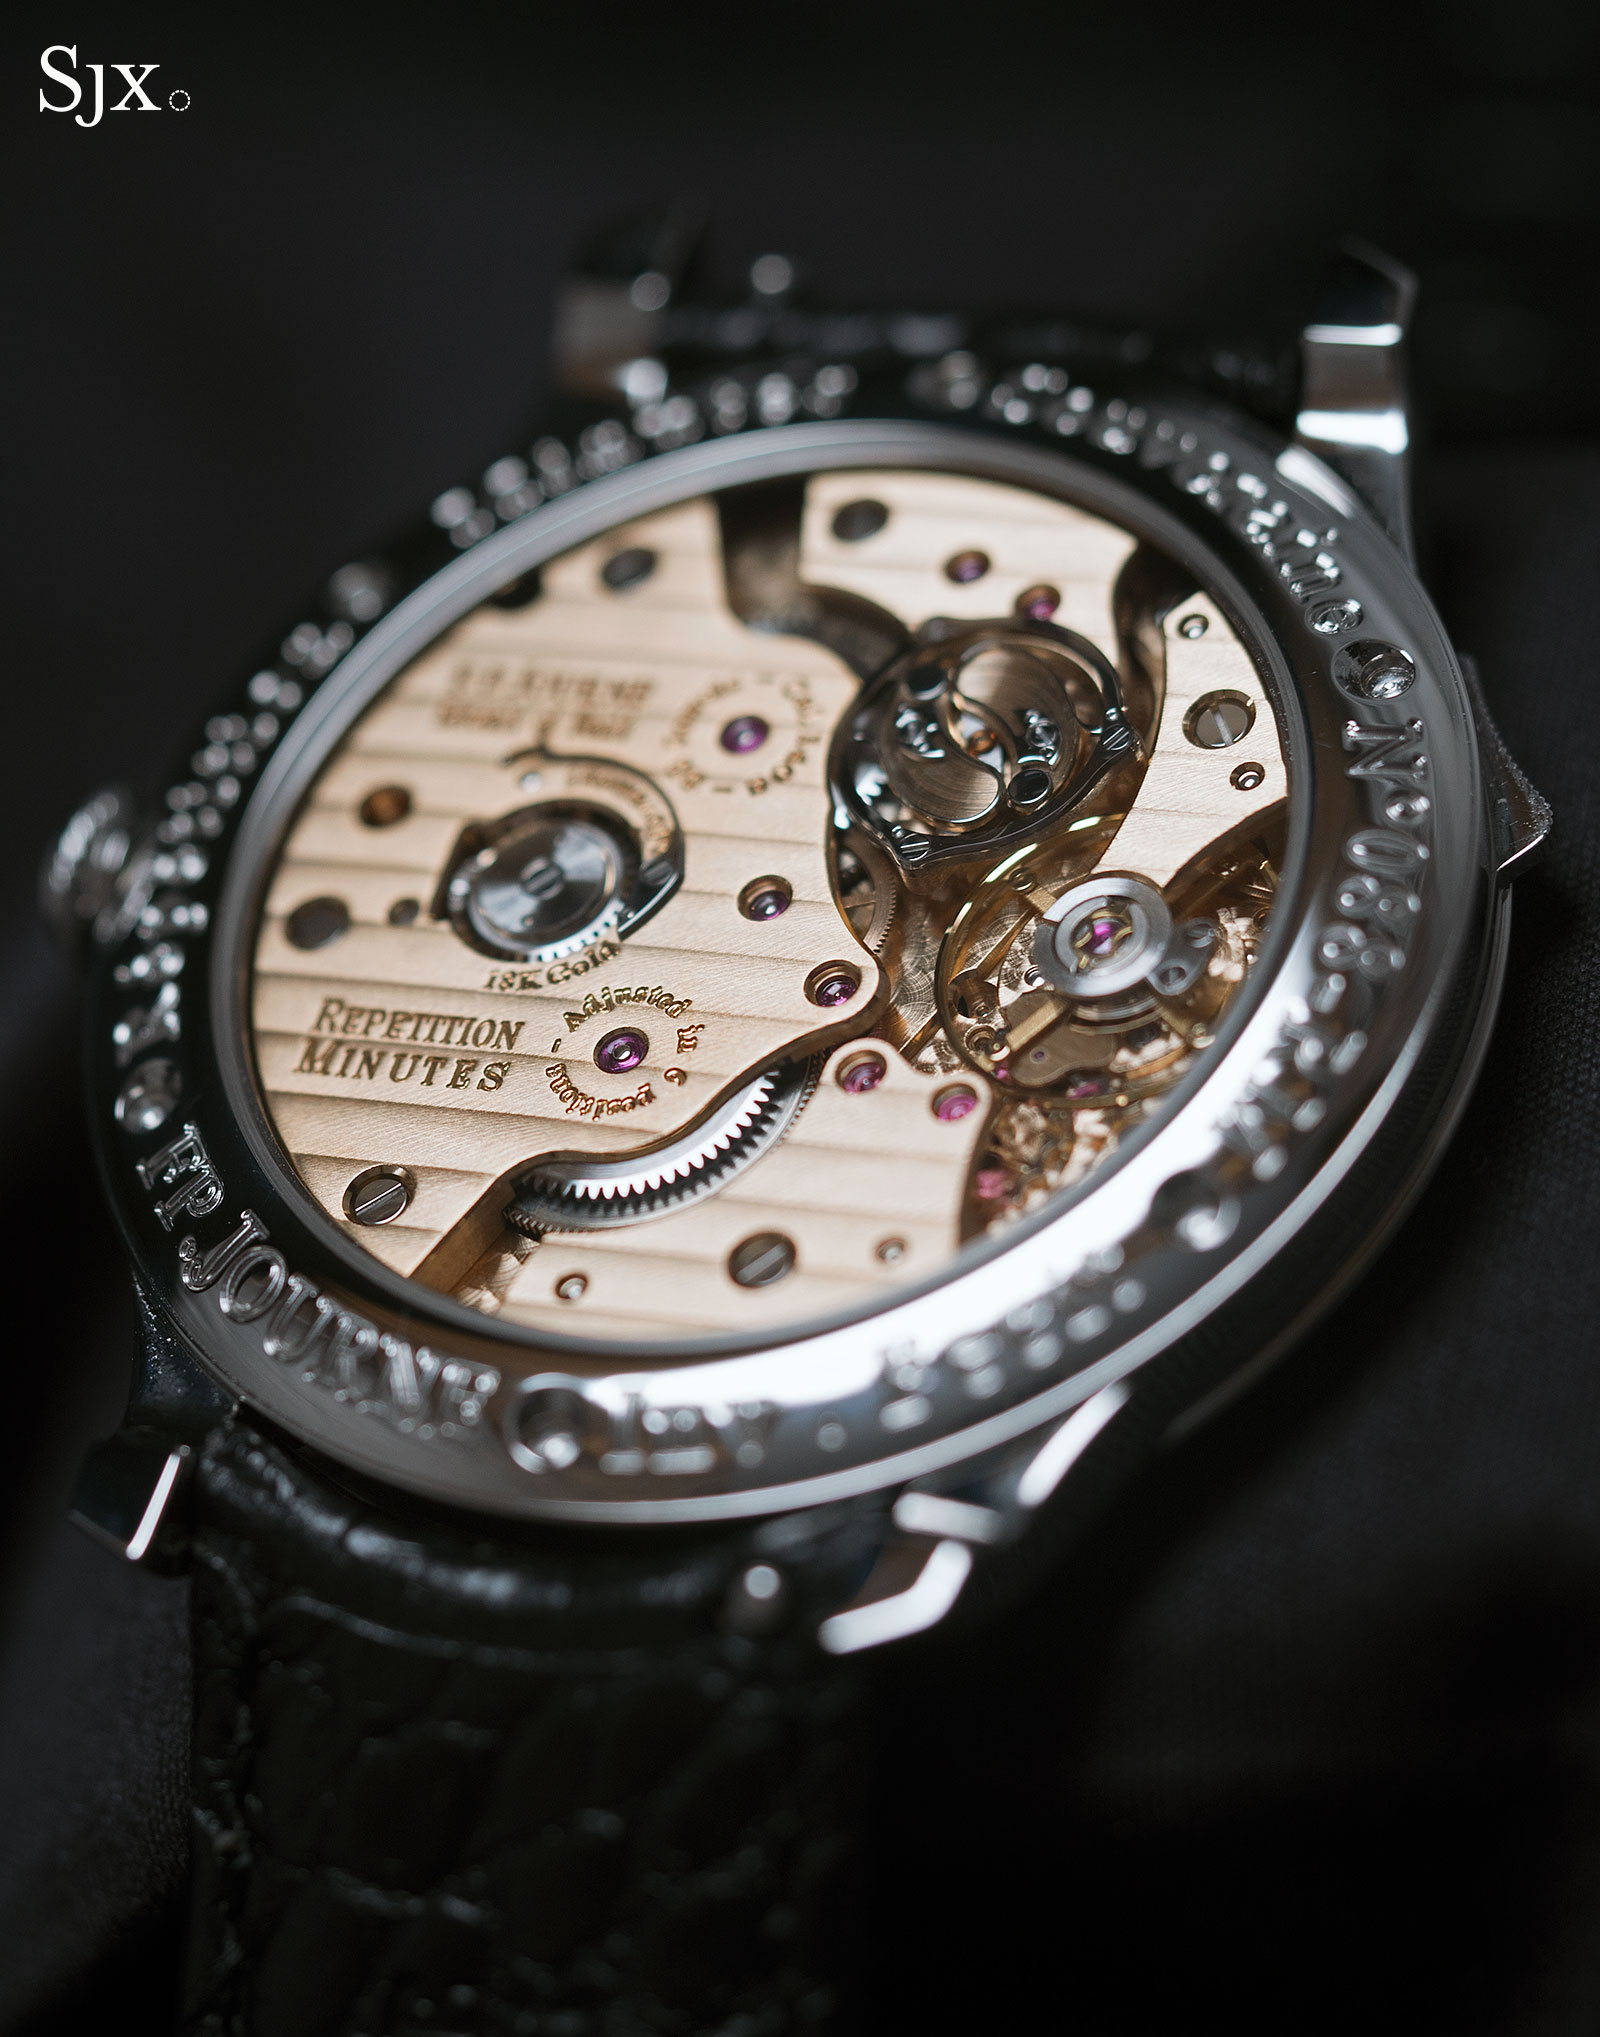 FP Journe Black Label Minute Repeater 6